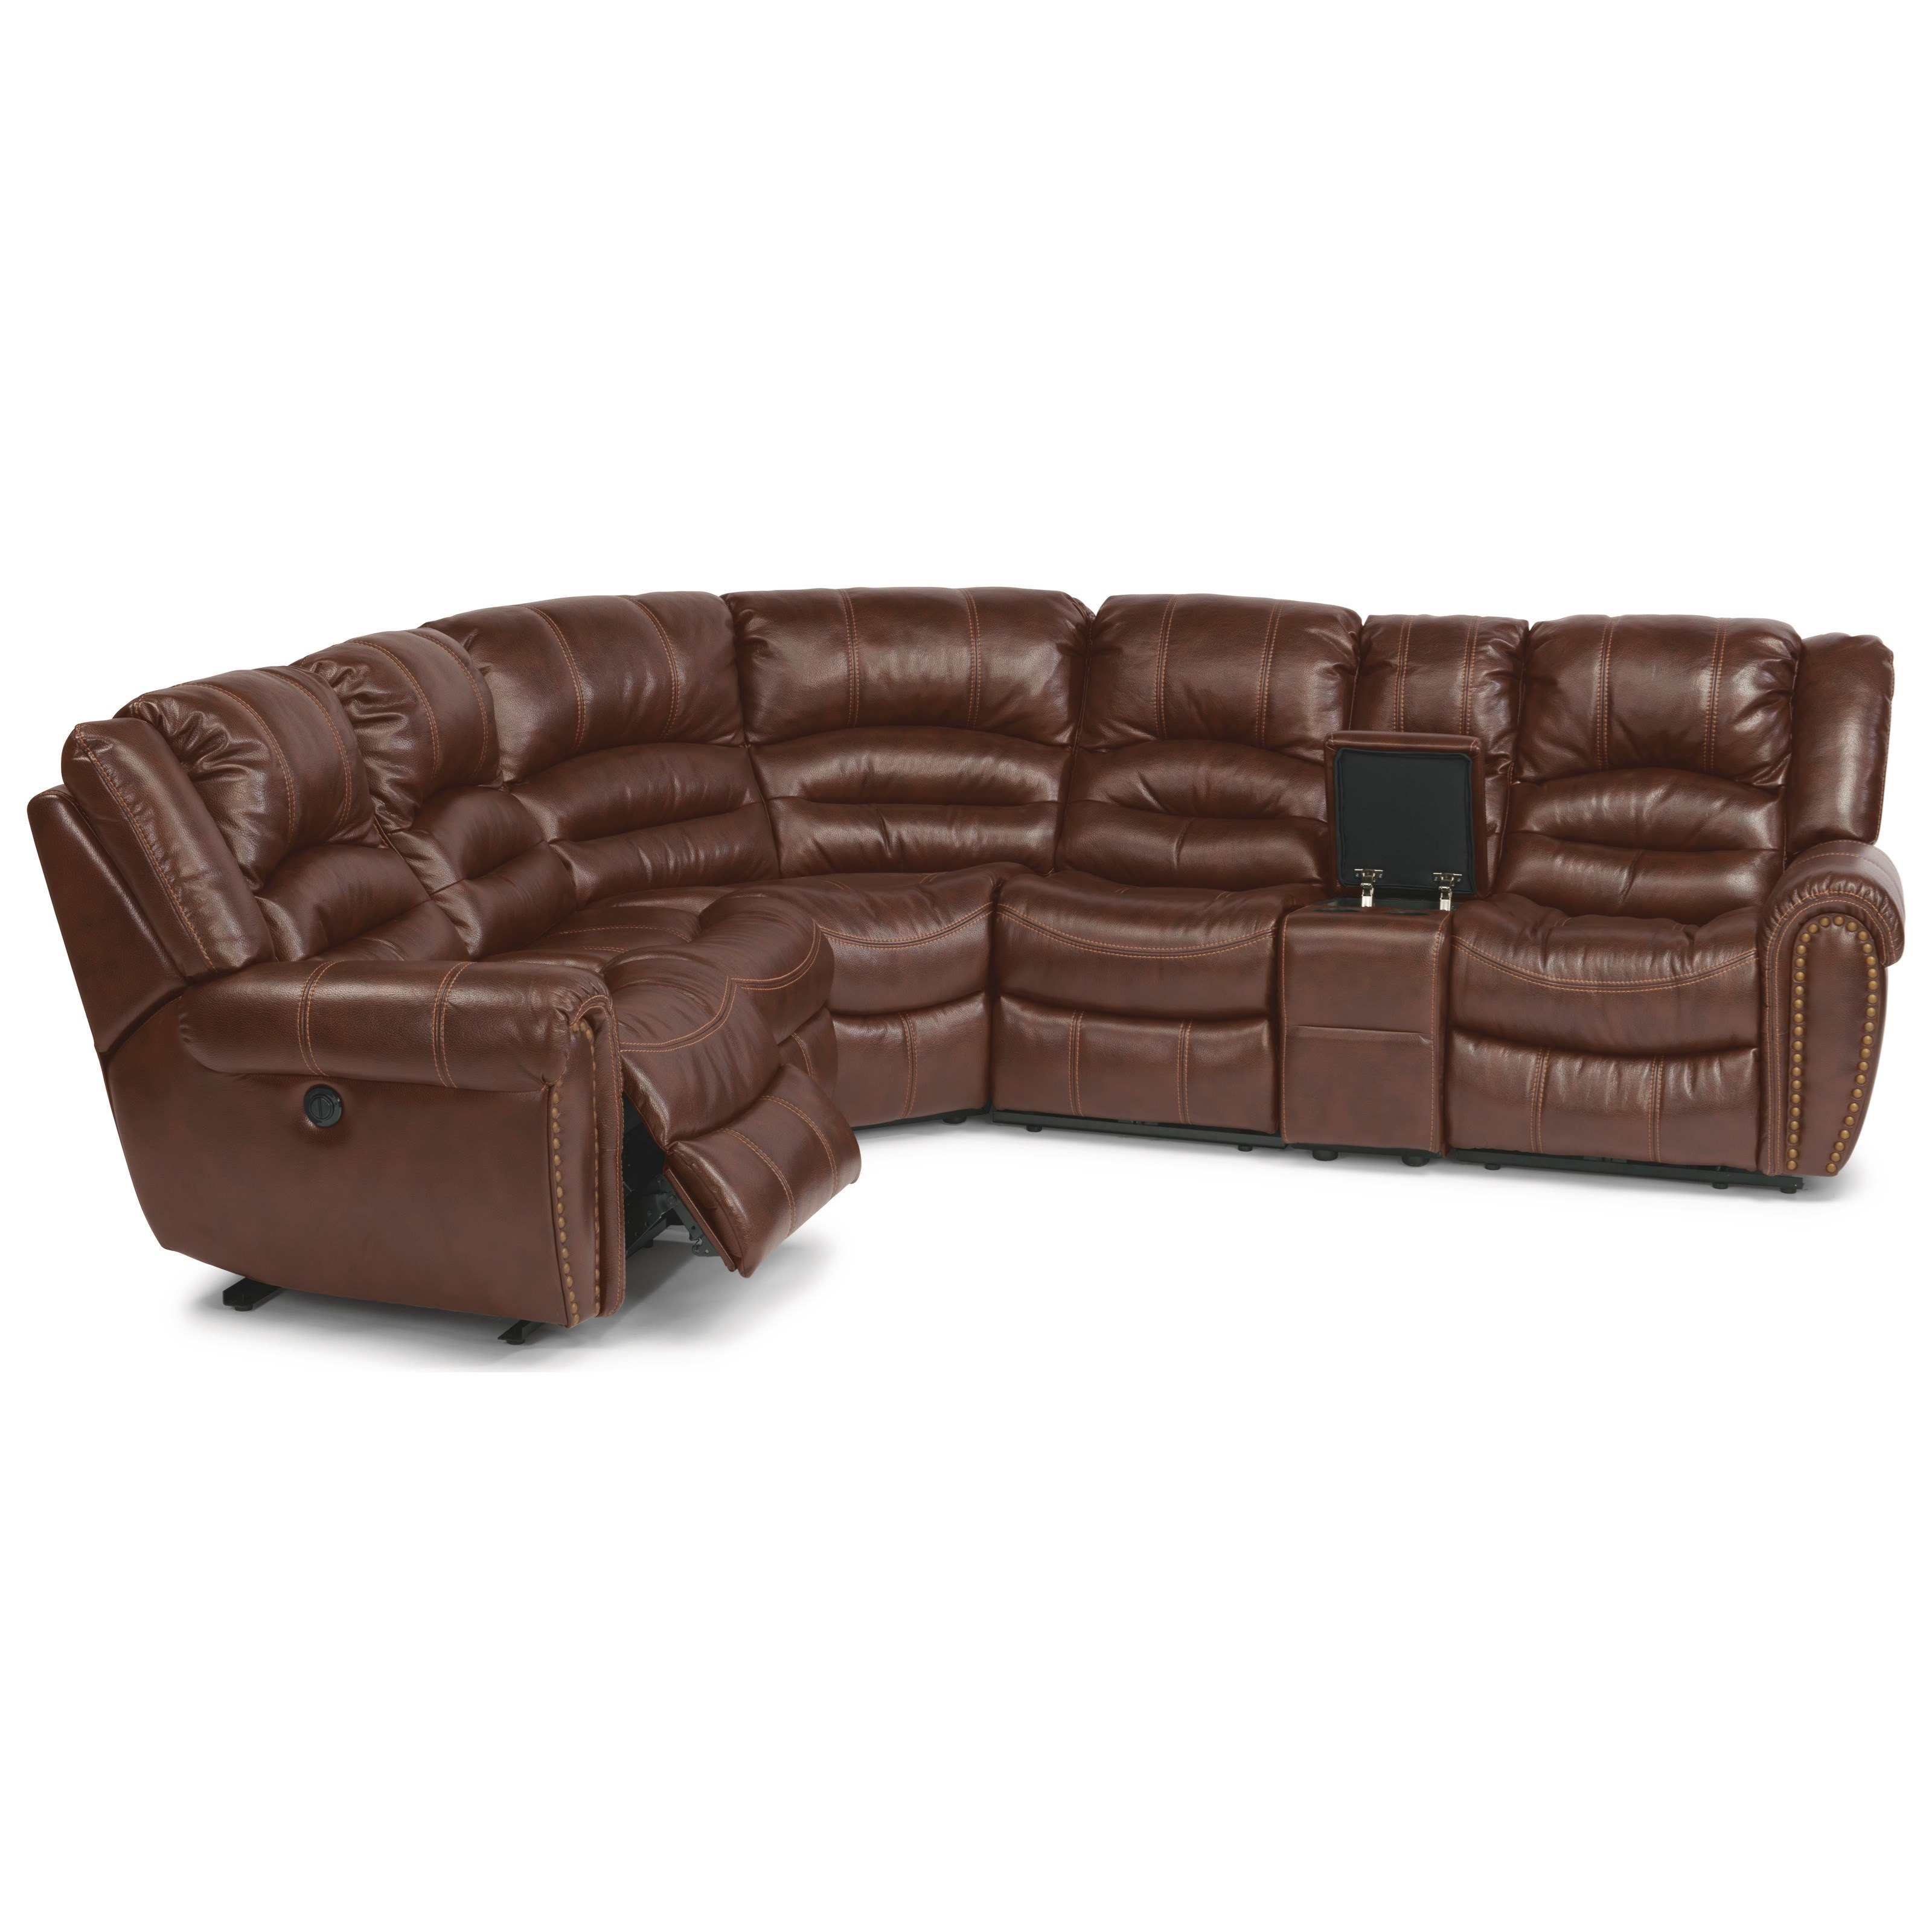 Latitudes - Town 6-Pc Power Sectional with Power Headrest by Flexsteel at Walker's Furniture